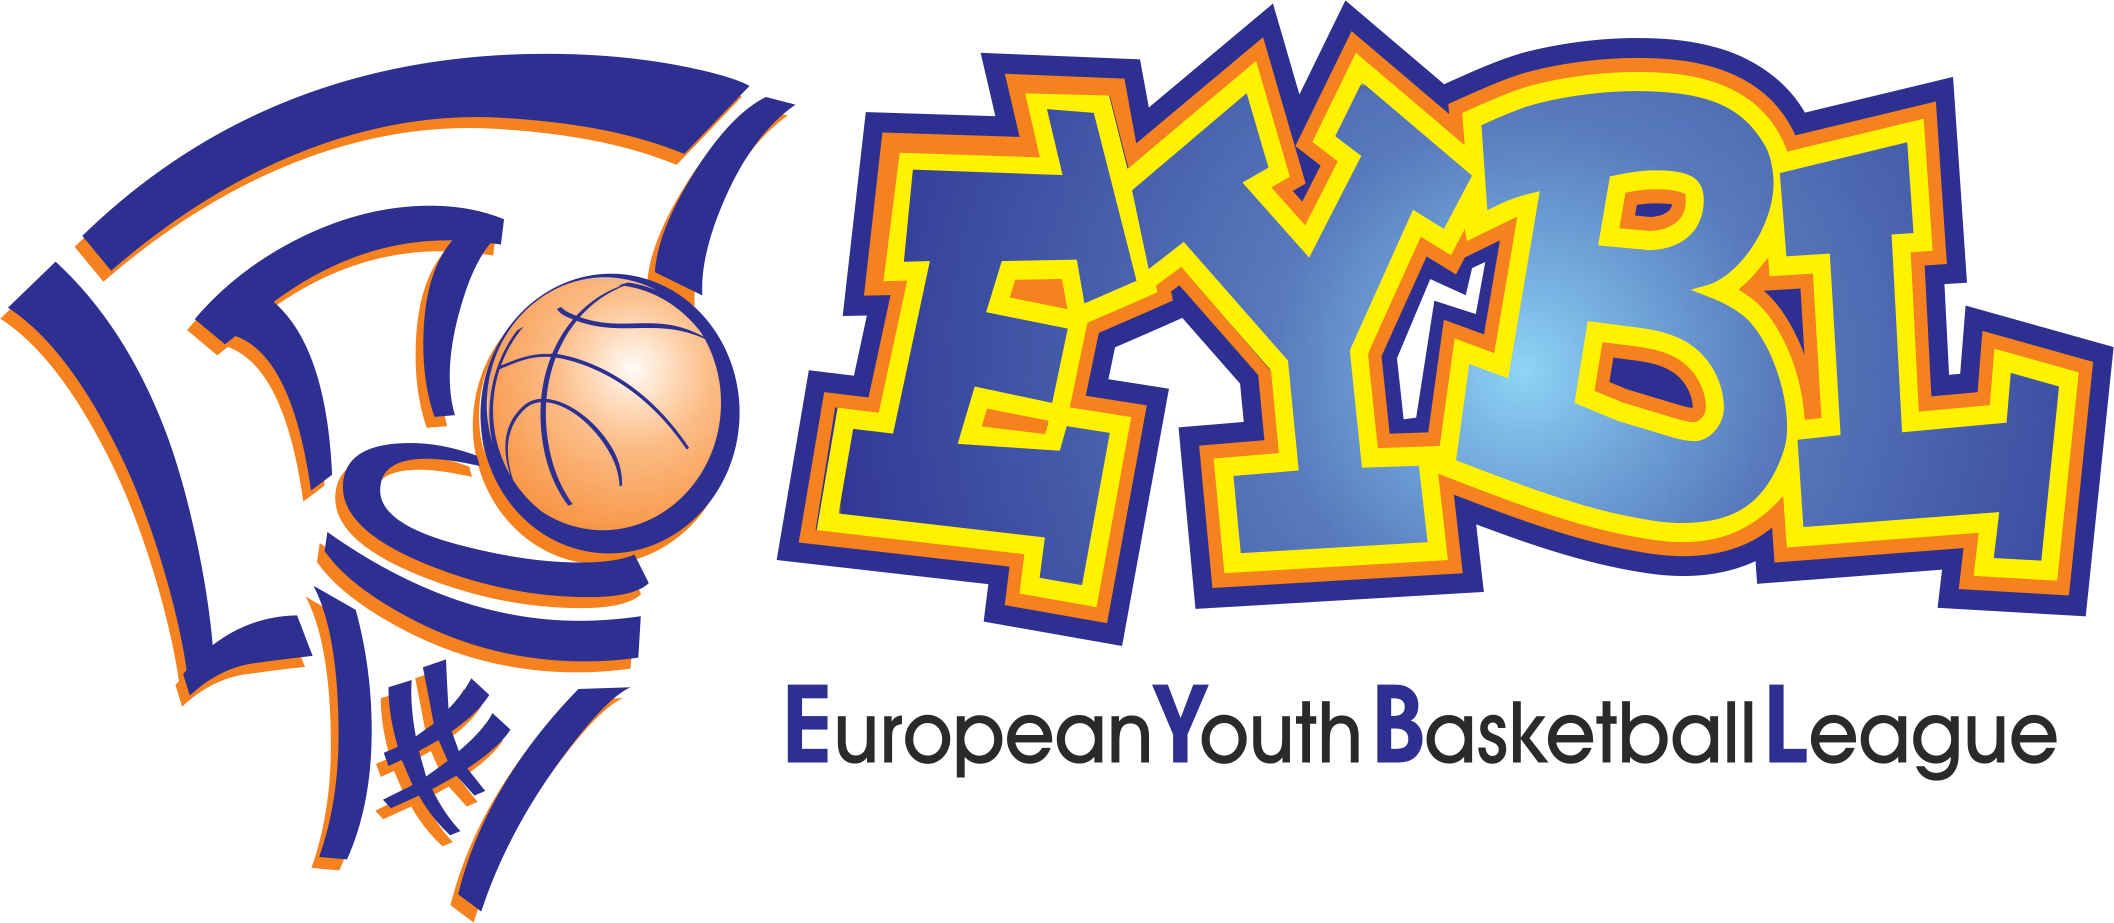 http://www.eybl.lv/new/documents/boys/Logo_JPG.png